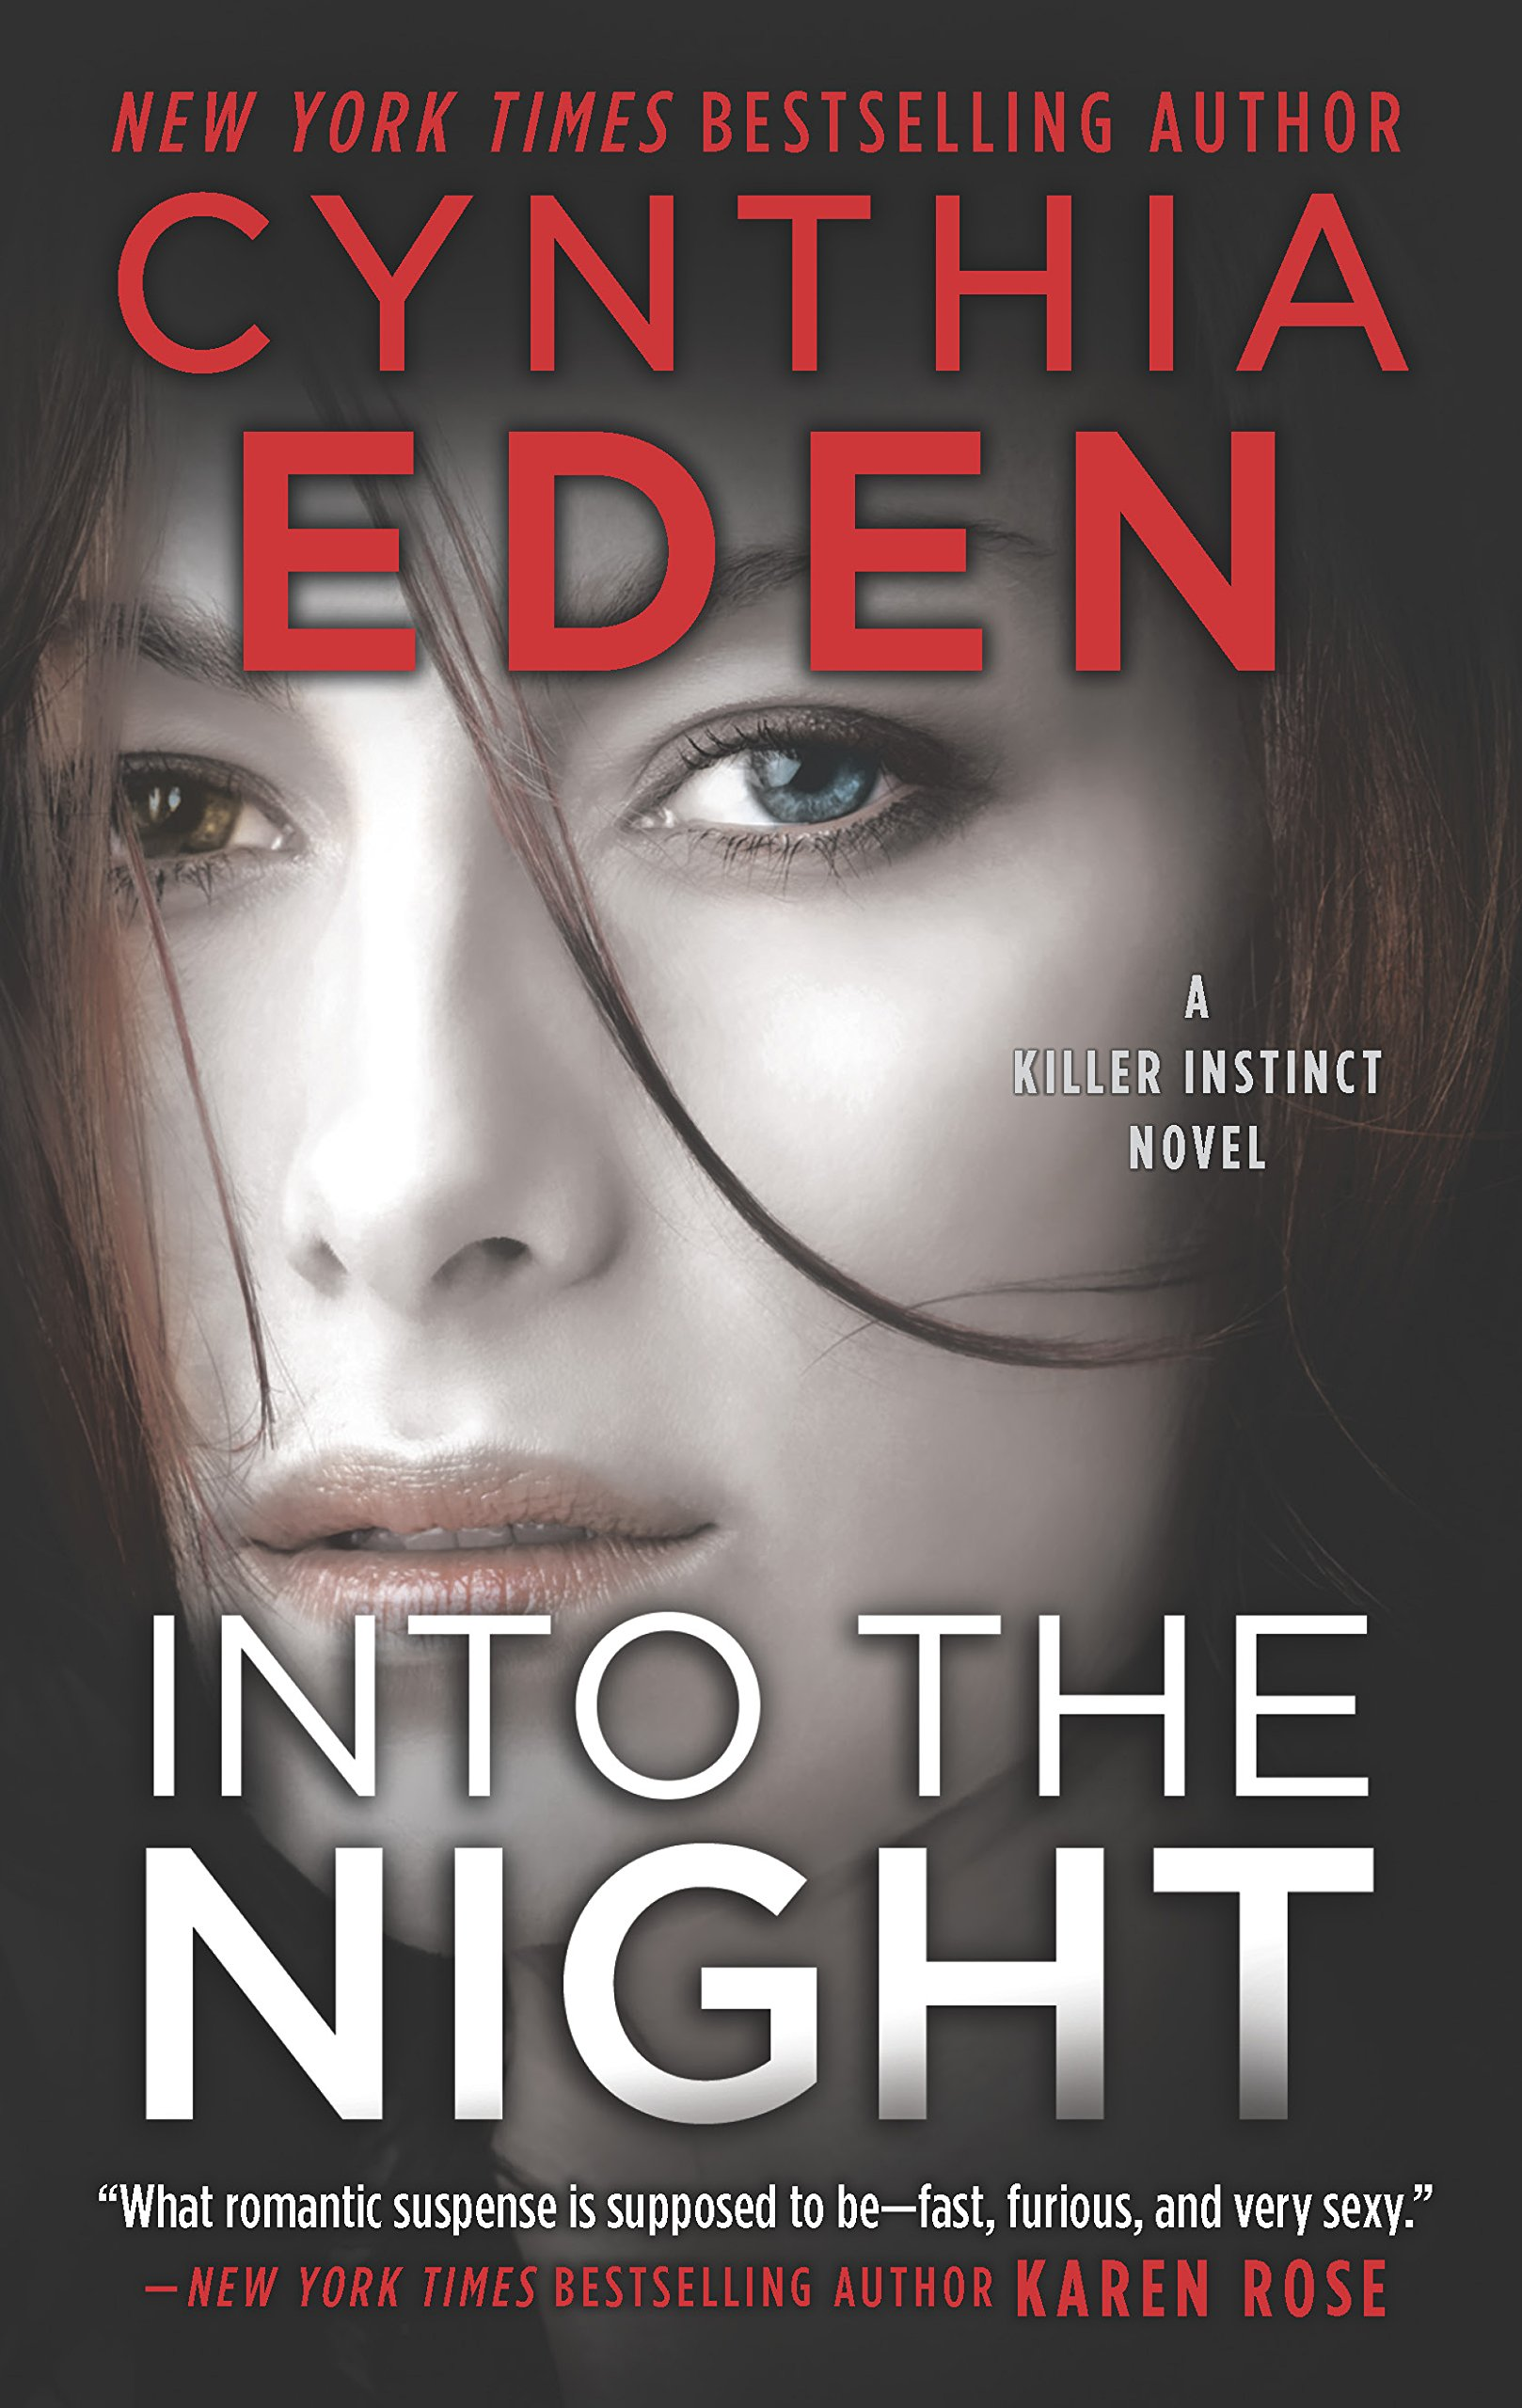 Adventure Romance Novels, cover of Into the Night by Cynthia Eden, books, wdc-slideshow